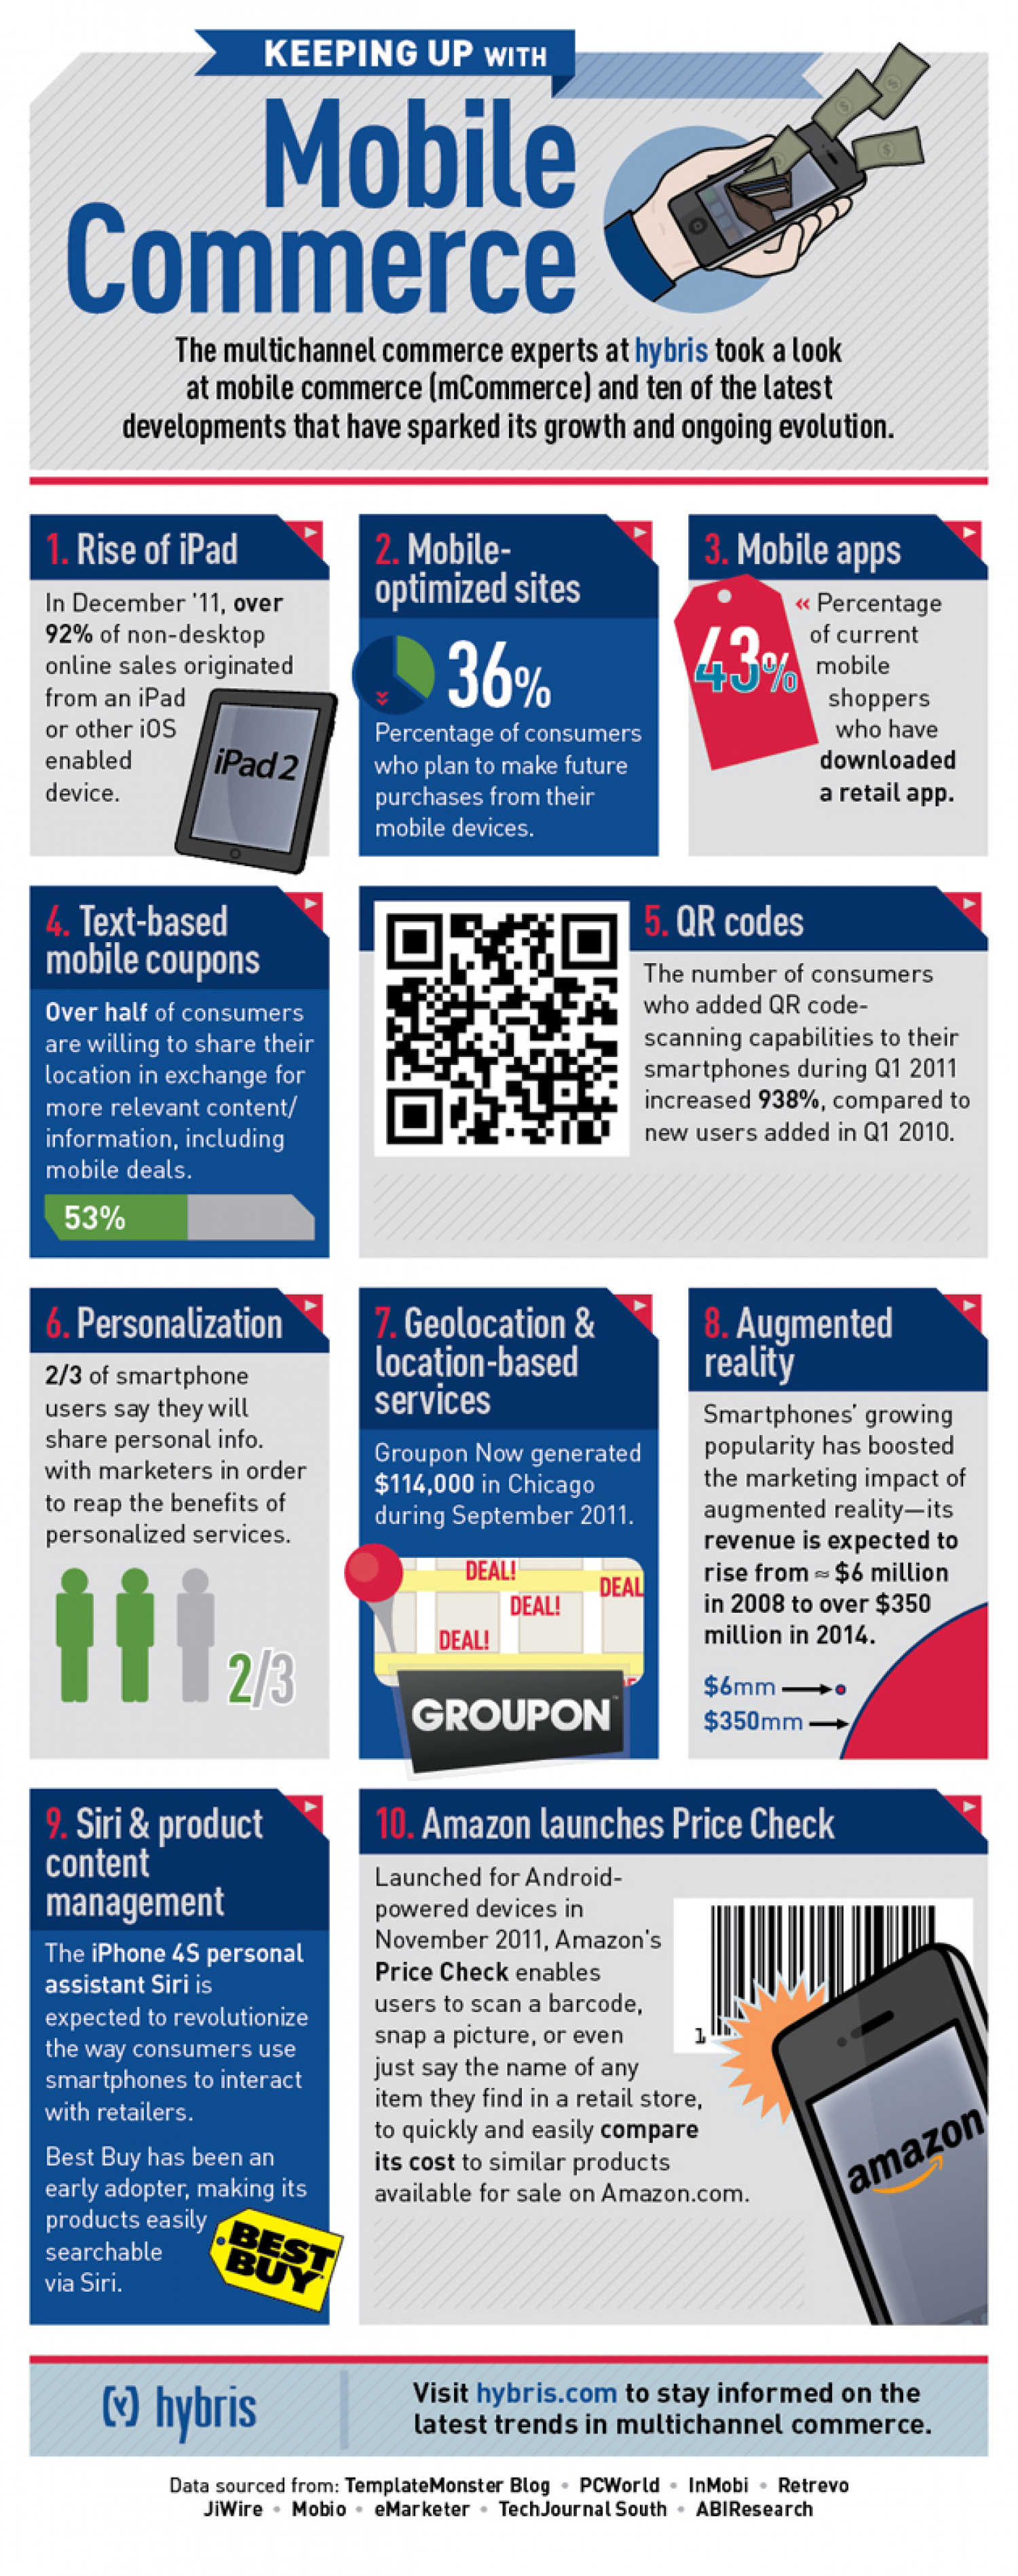 Keeping Up with Mobile Commerce Infographic